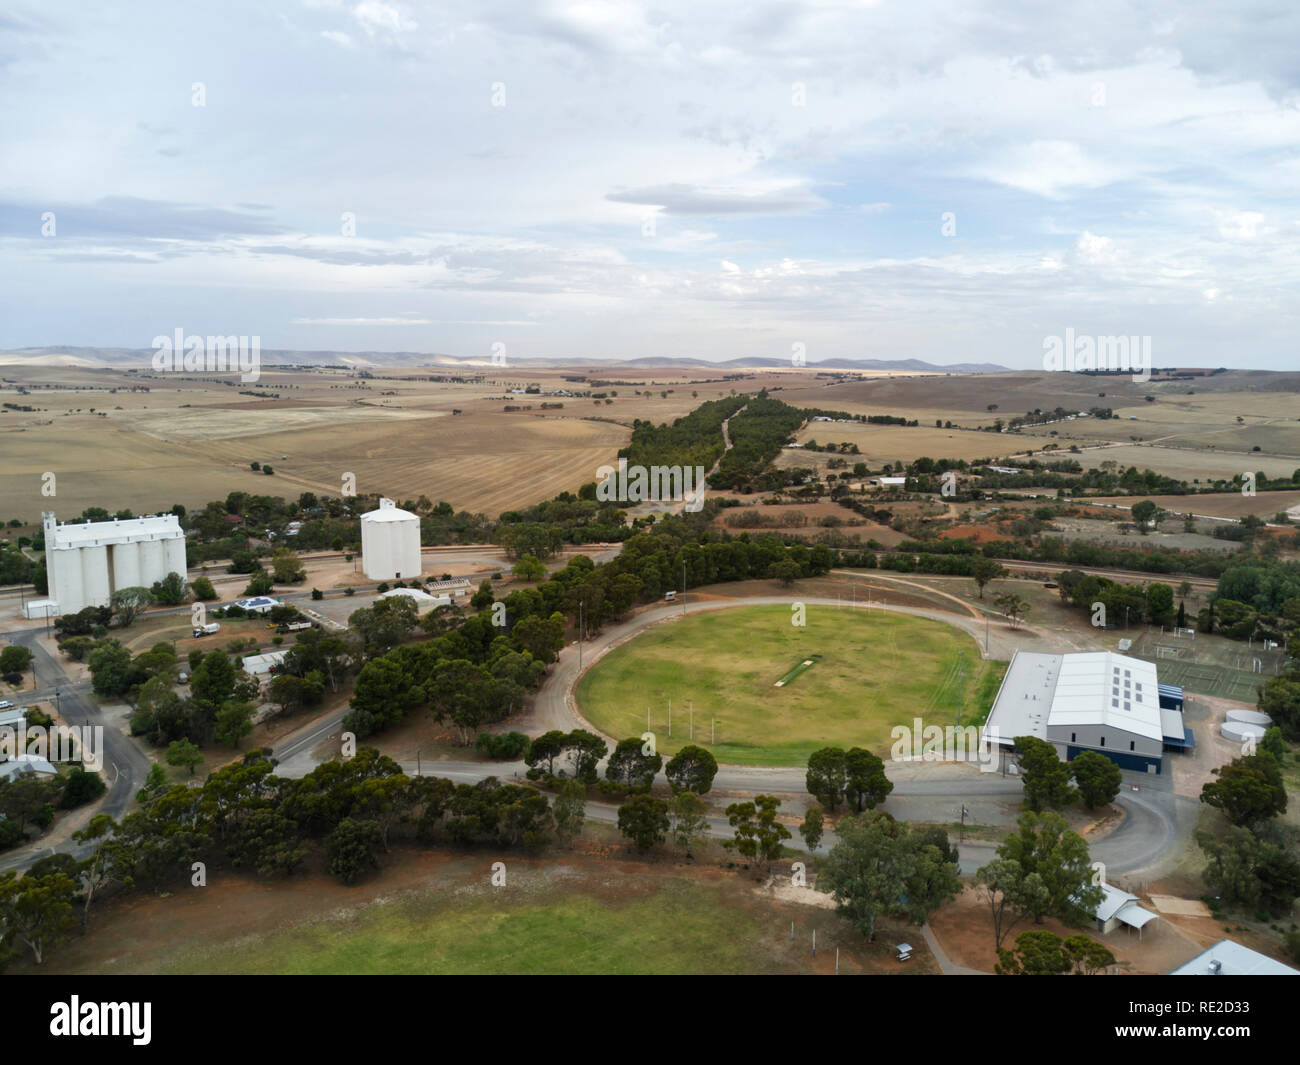 Aerials of sporting complex and the historic agricultural town of Gladstone South Australia - Stock Image